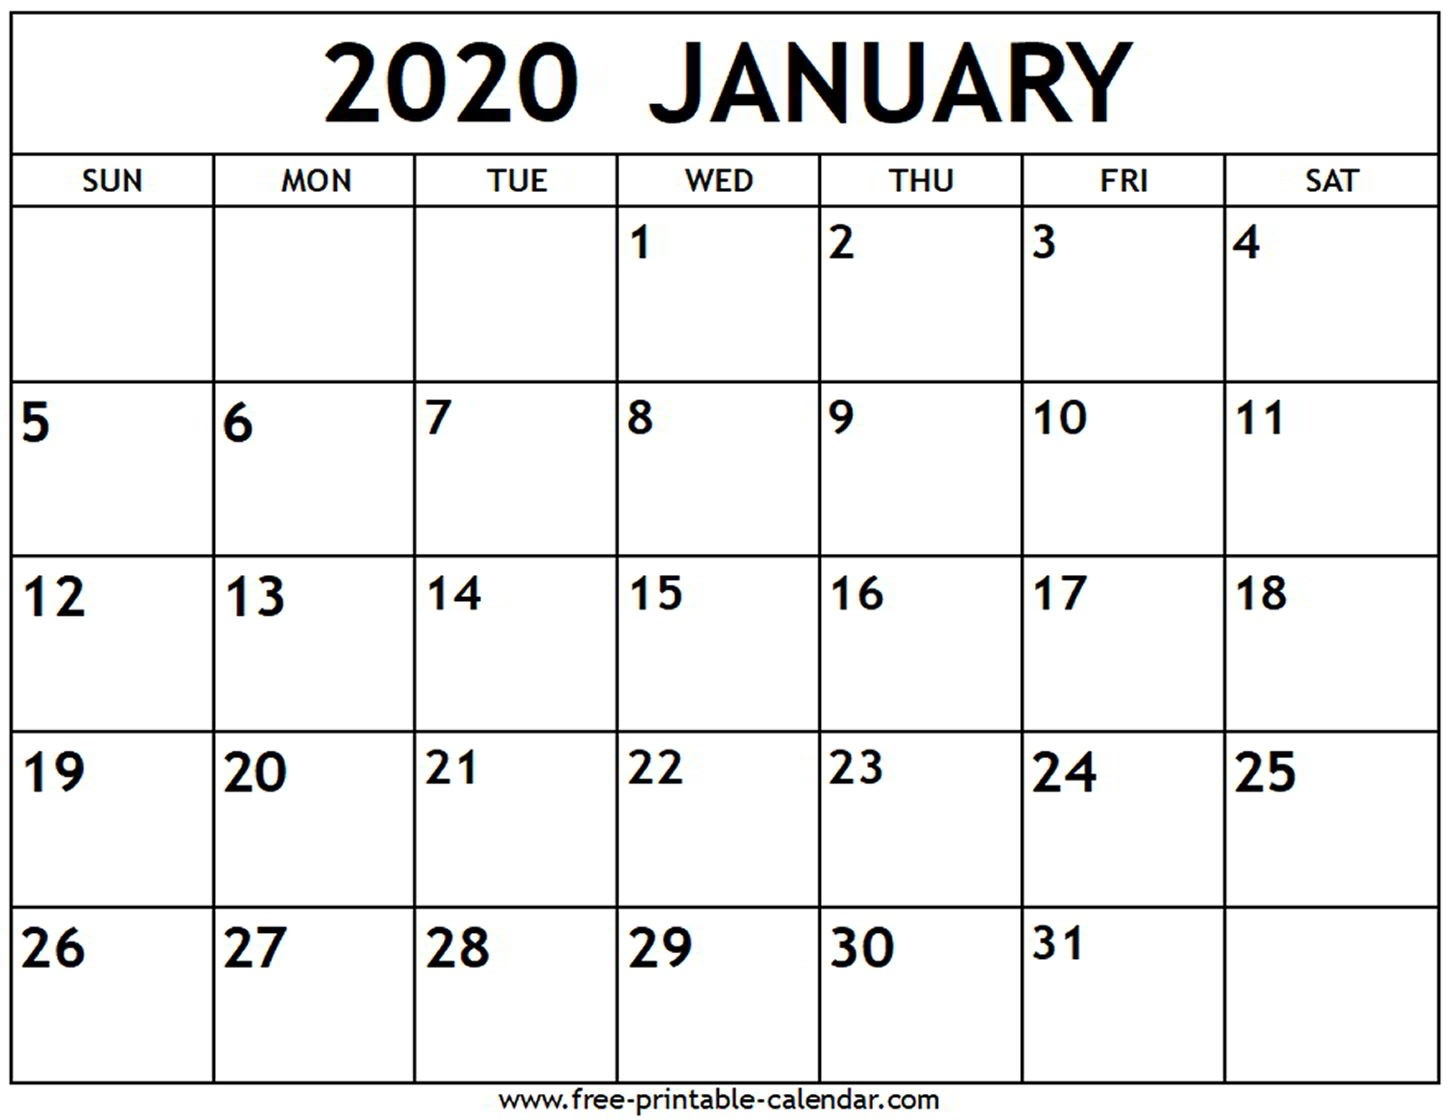 January 2020 Calendar - Free-Printable-Calendar-January 2020 Calendar With Holidays Printable